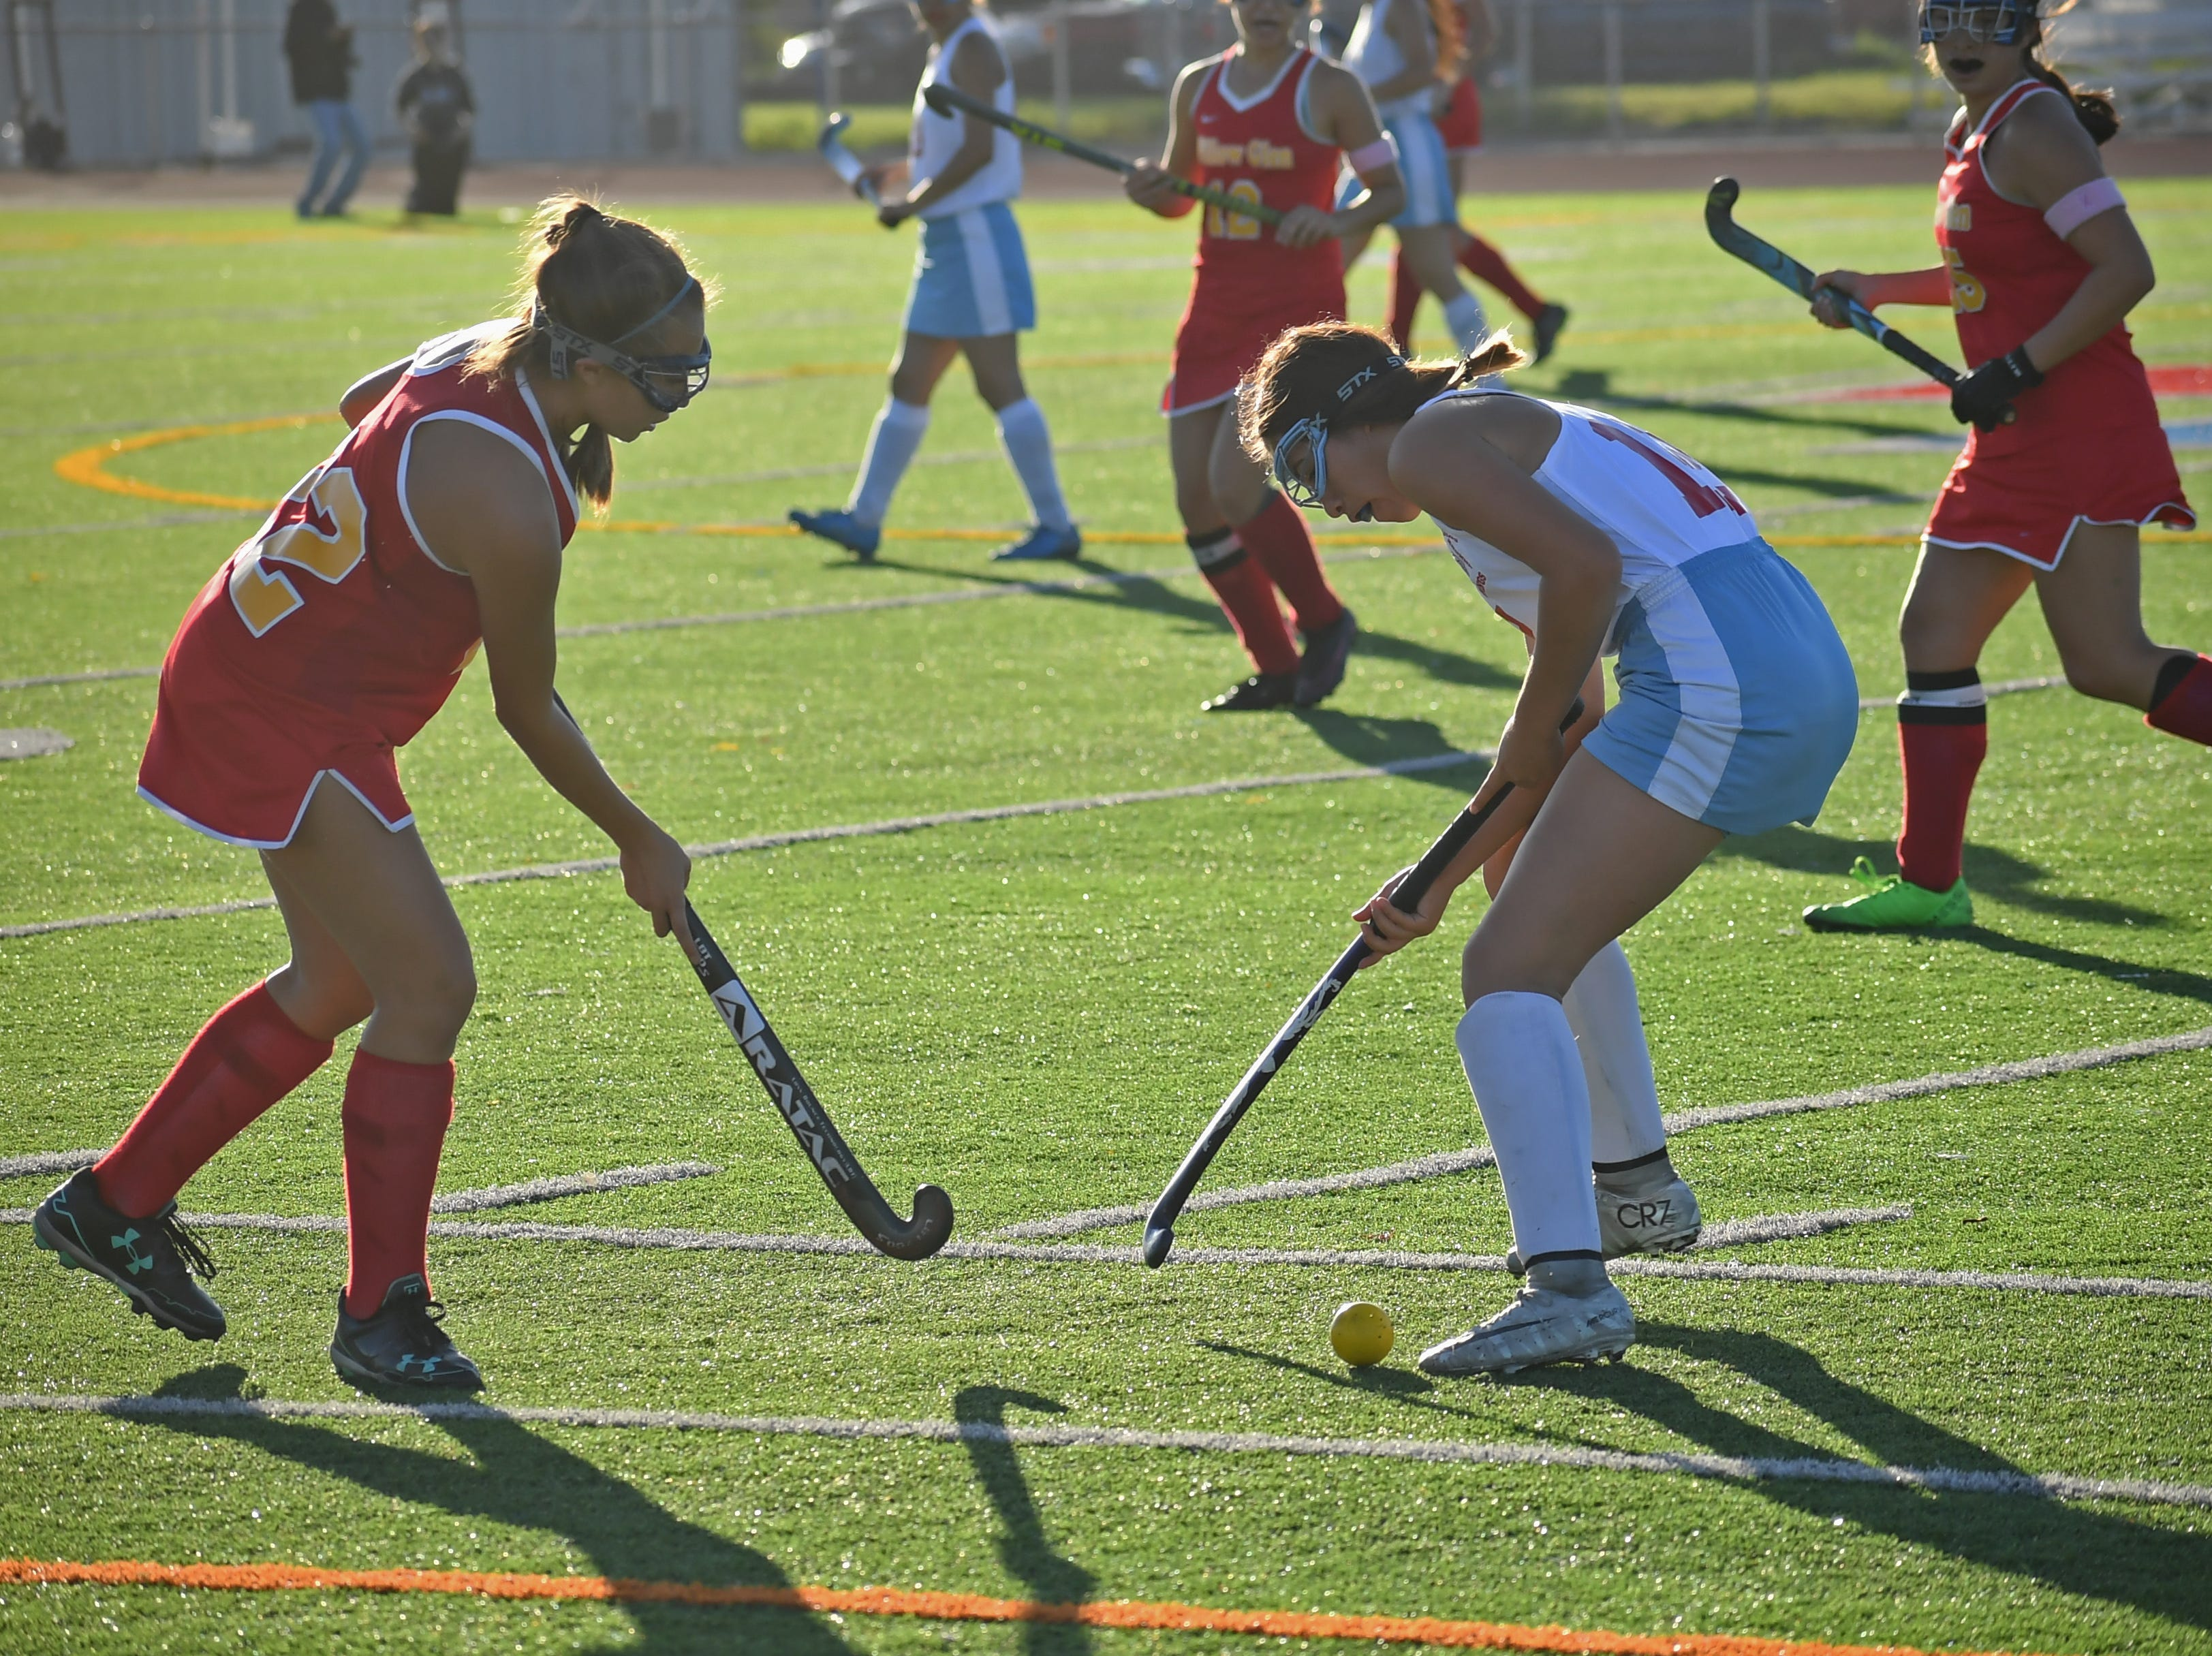 Midfielder Yesenia Solis (12) steals the ball from one of the Willow Glen midfielders.